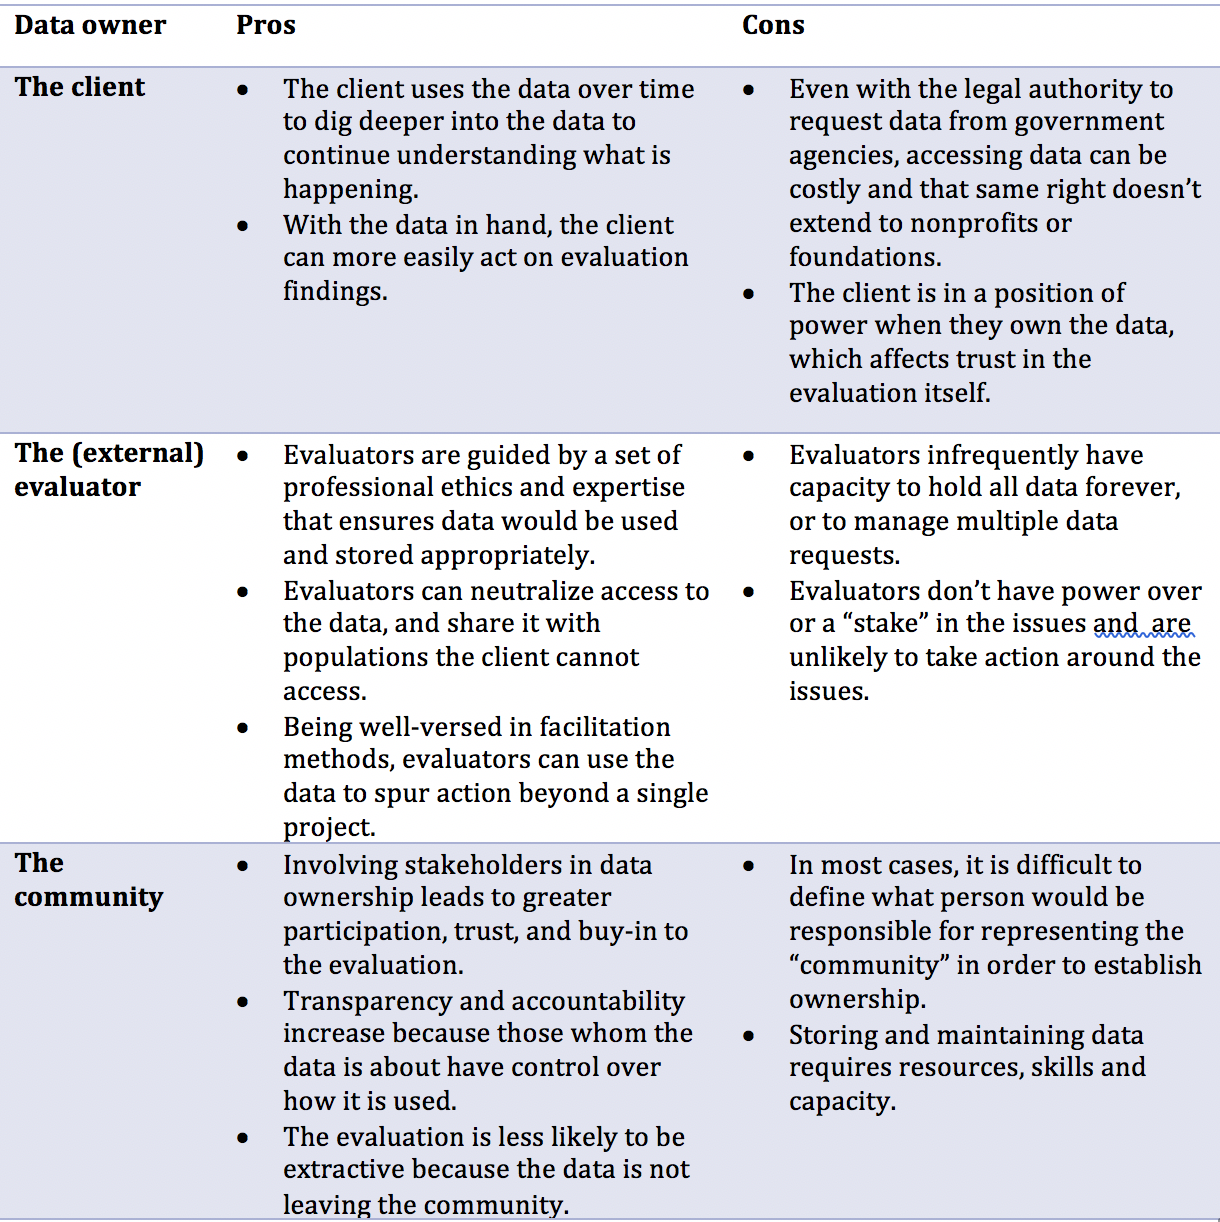 Data owner, pros and cons table